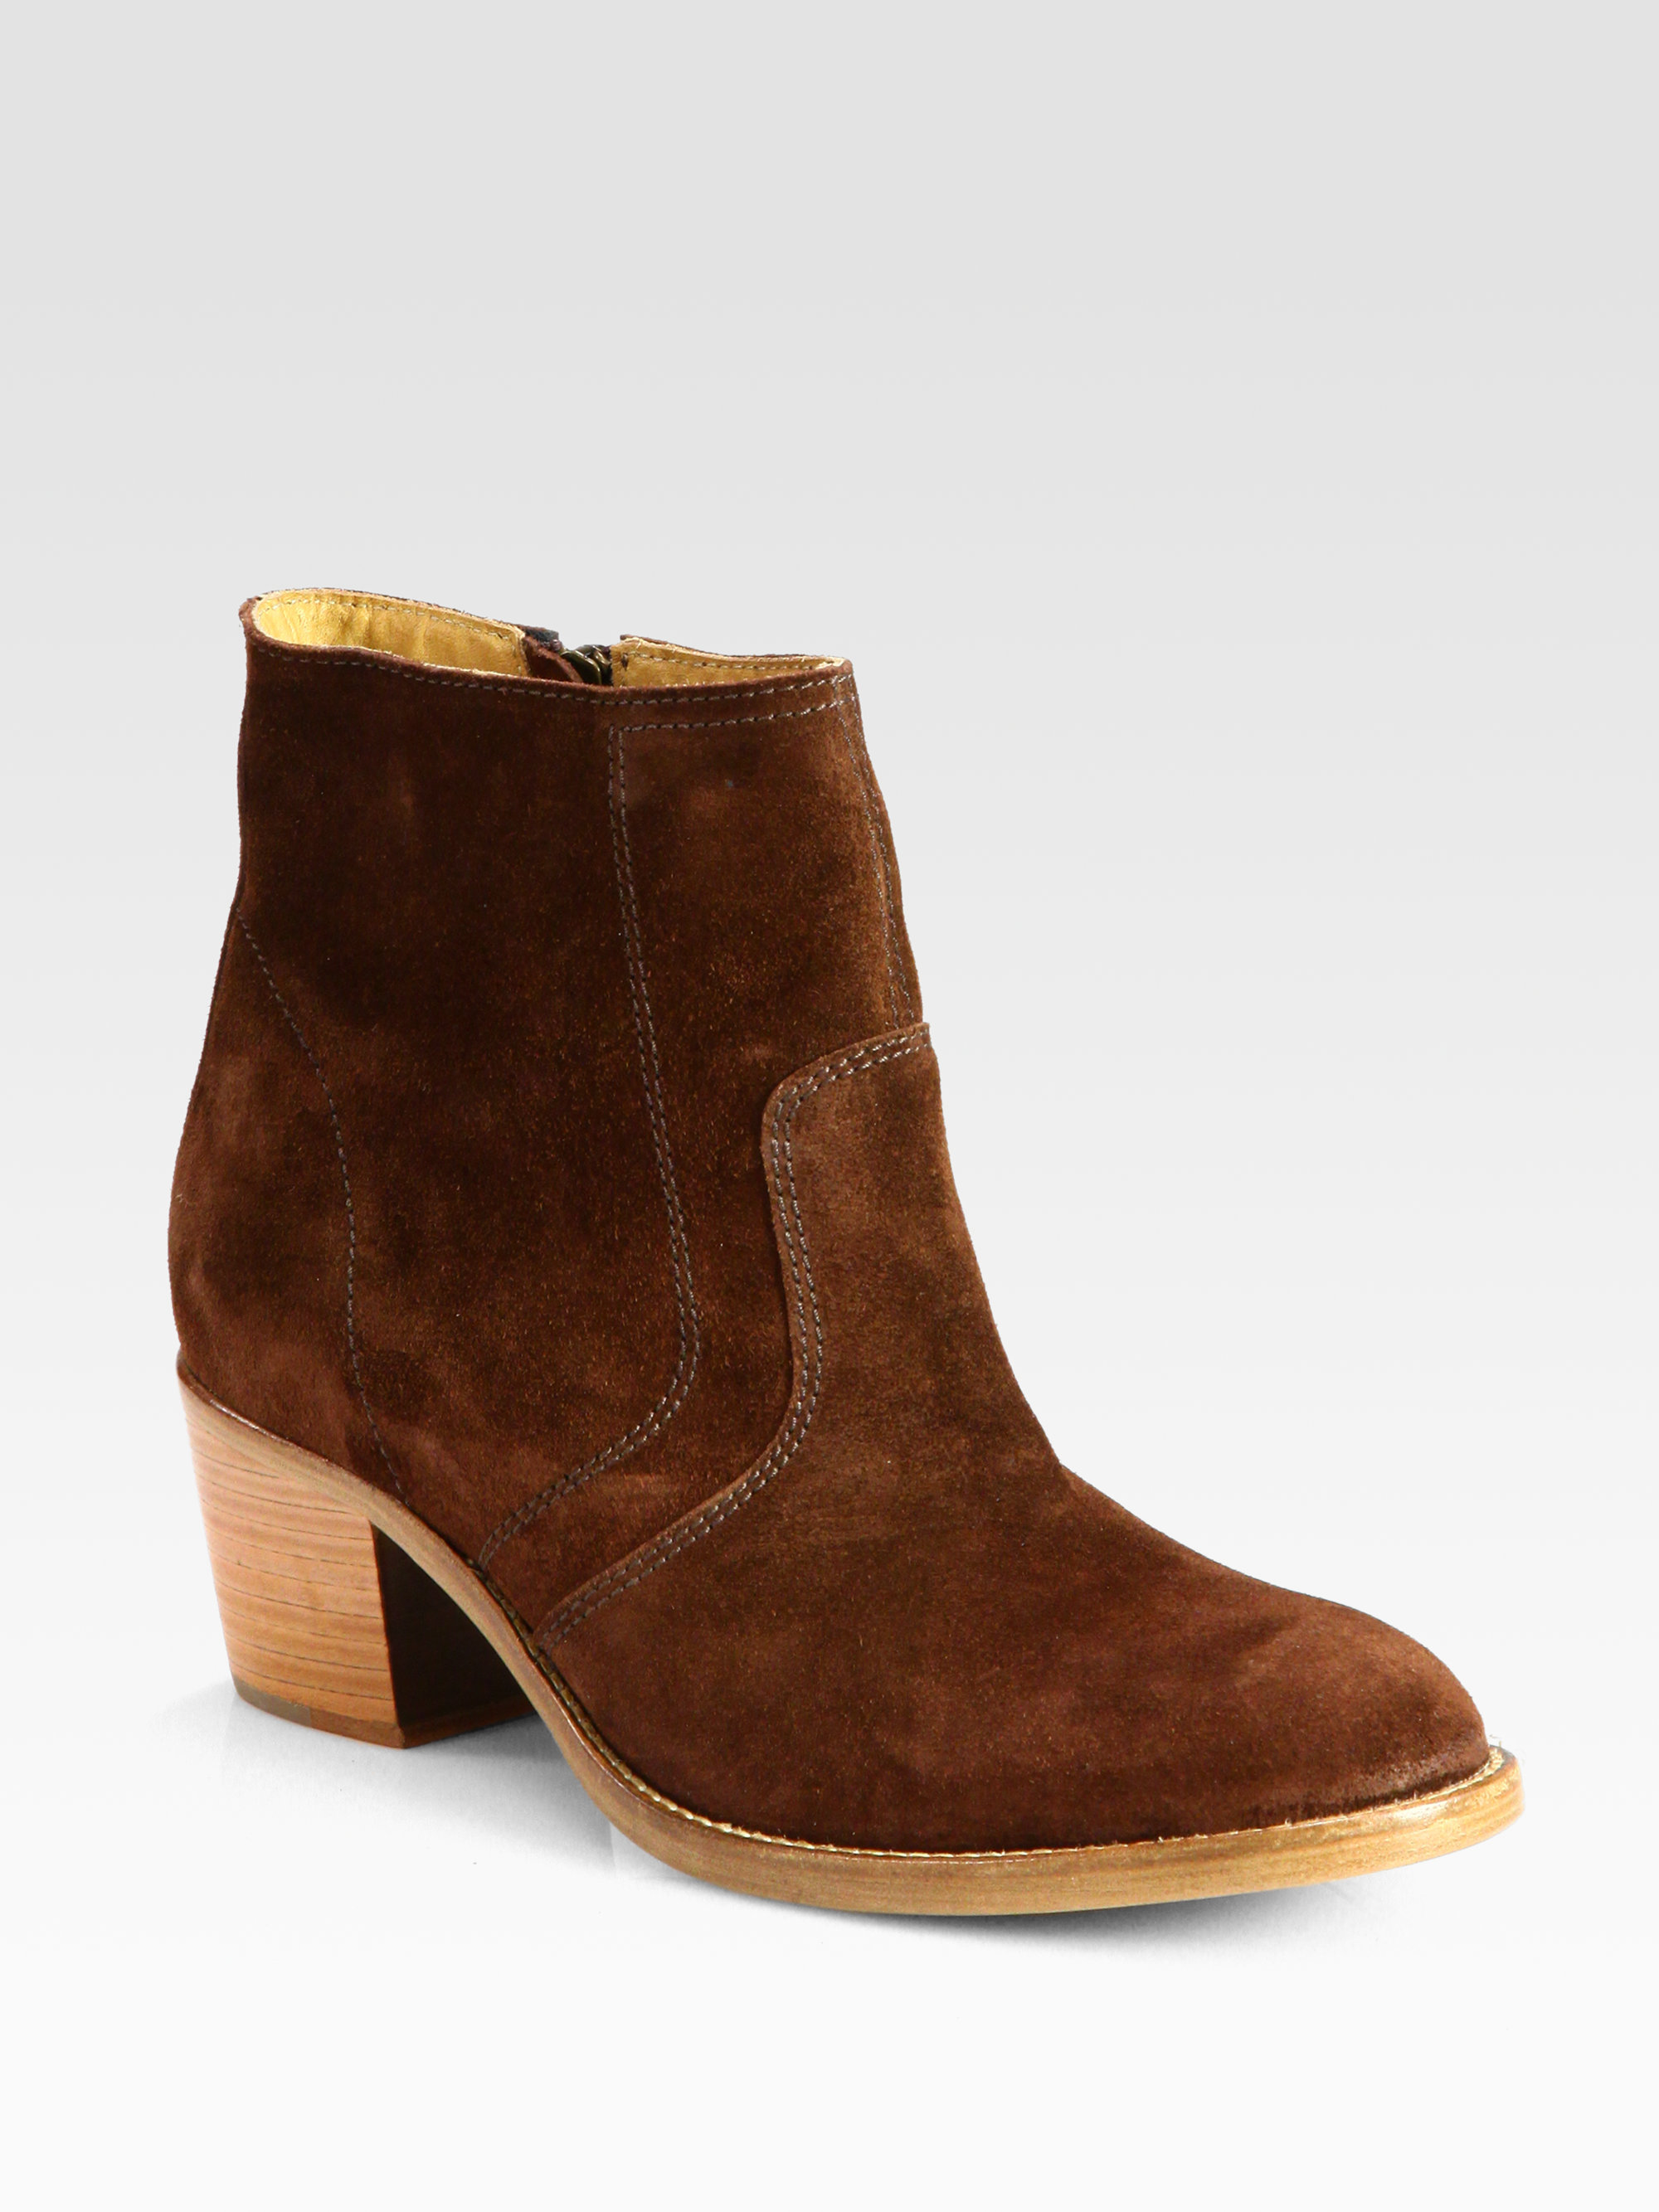 A.p.c. Suede Ankle Boots in Brown | Lyst